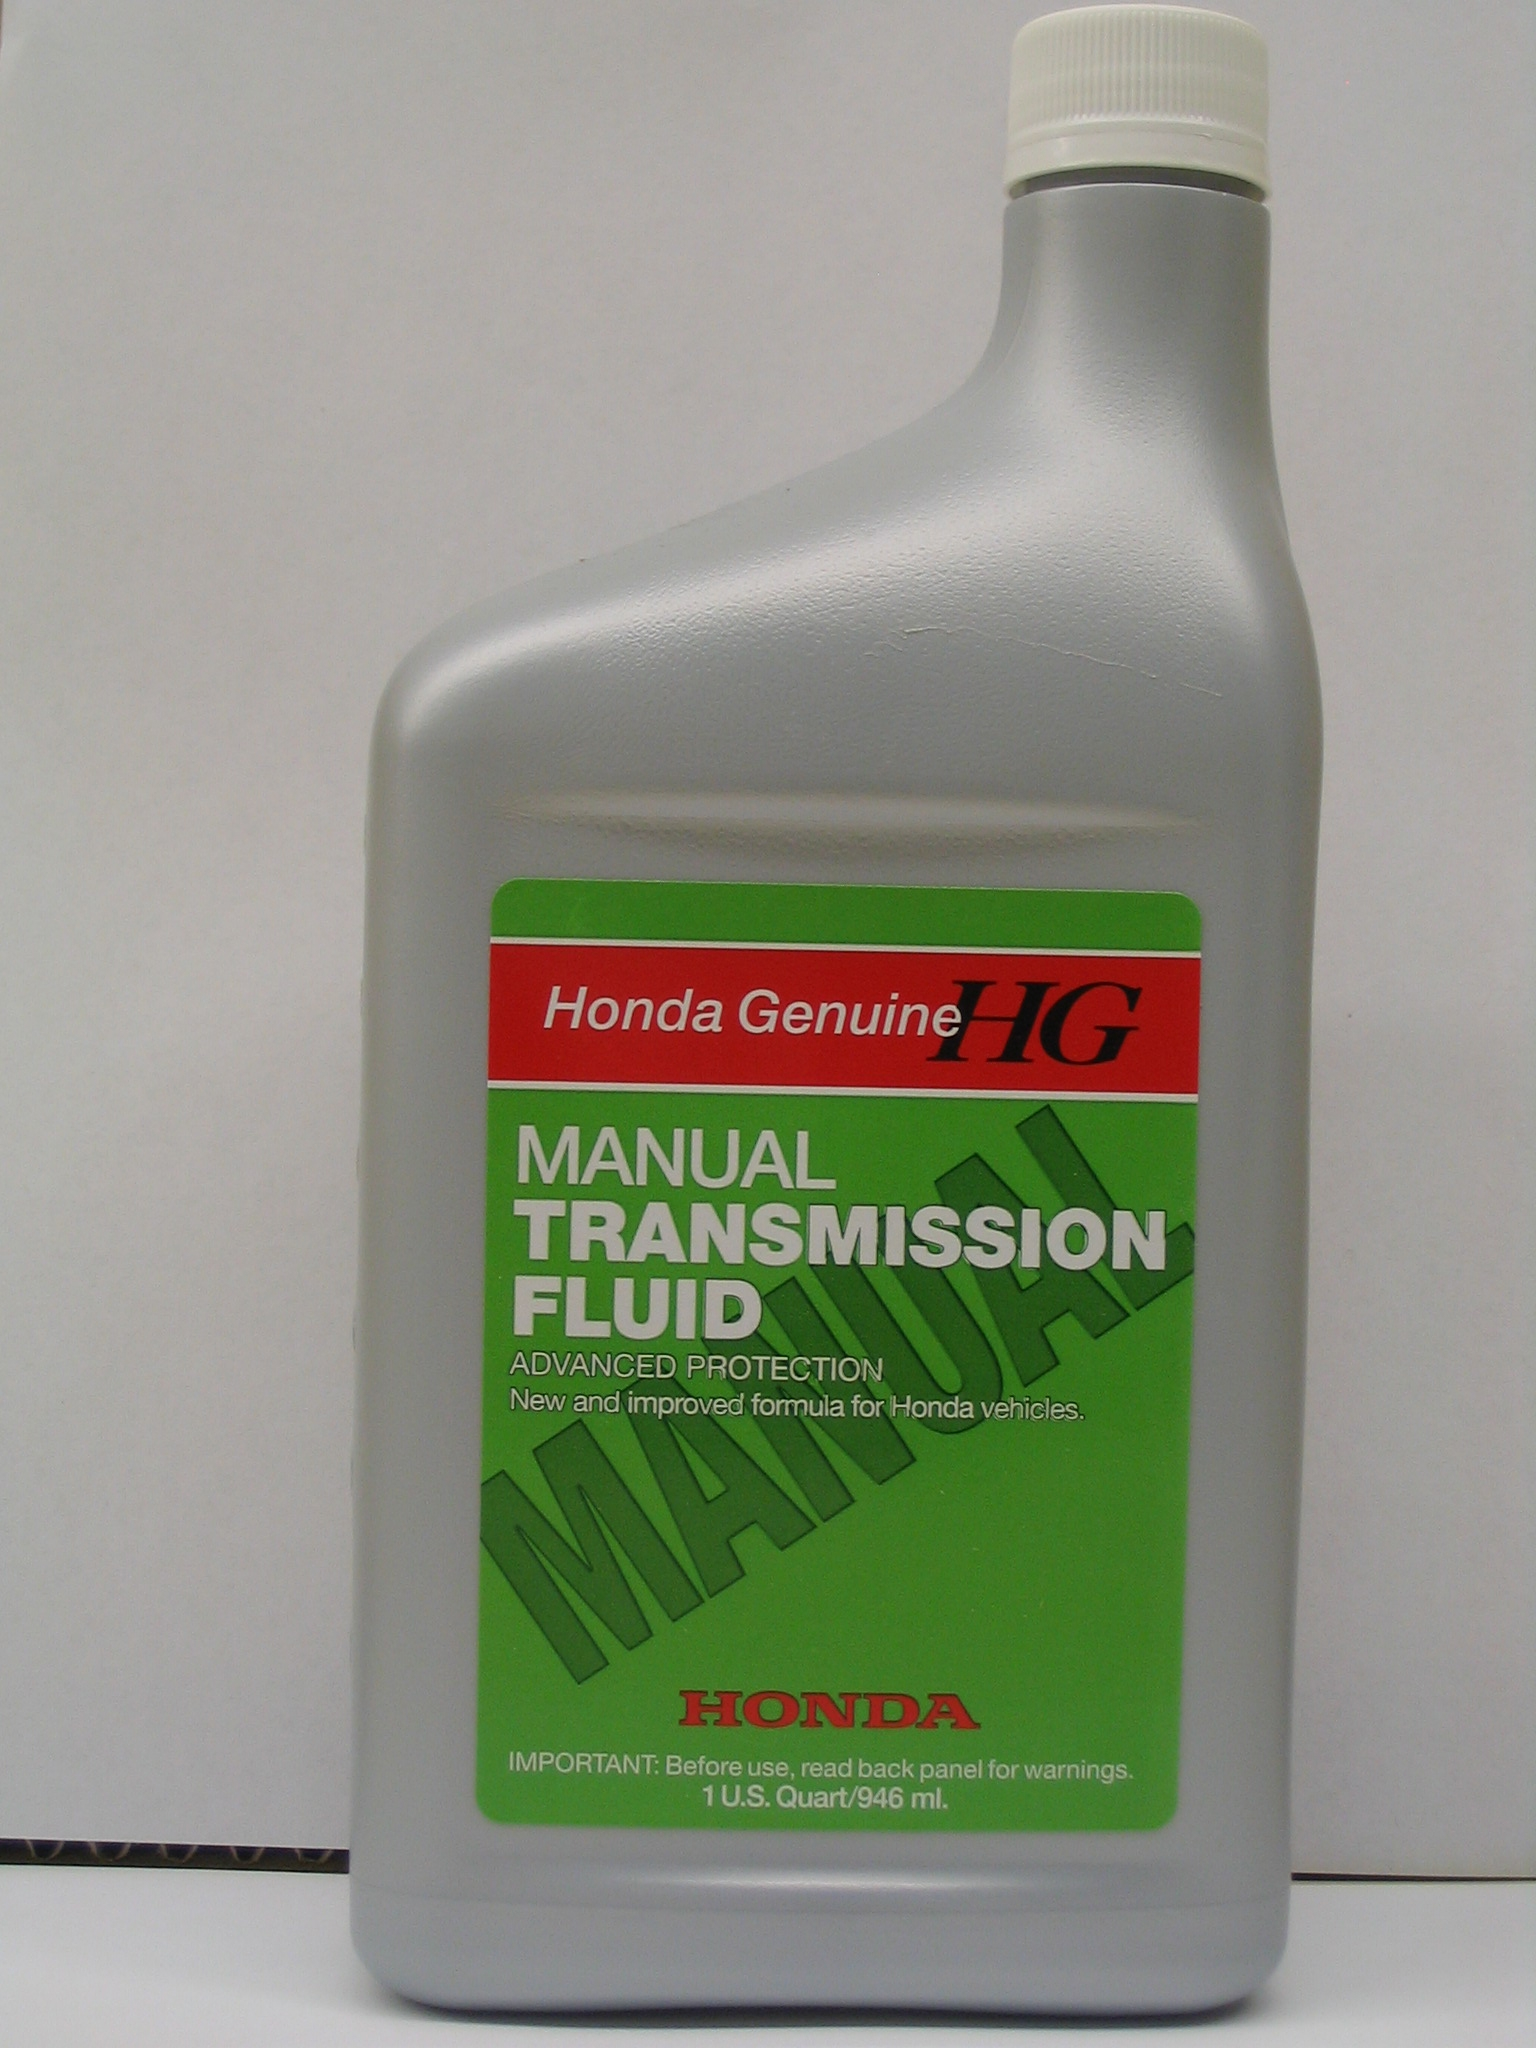 How To Change The Transmission Fluid In A Honda Ehow